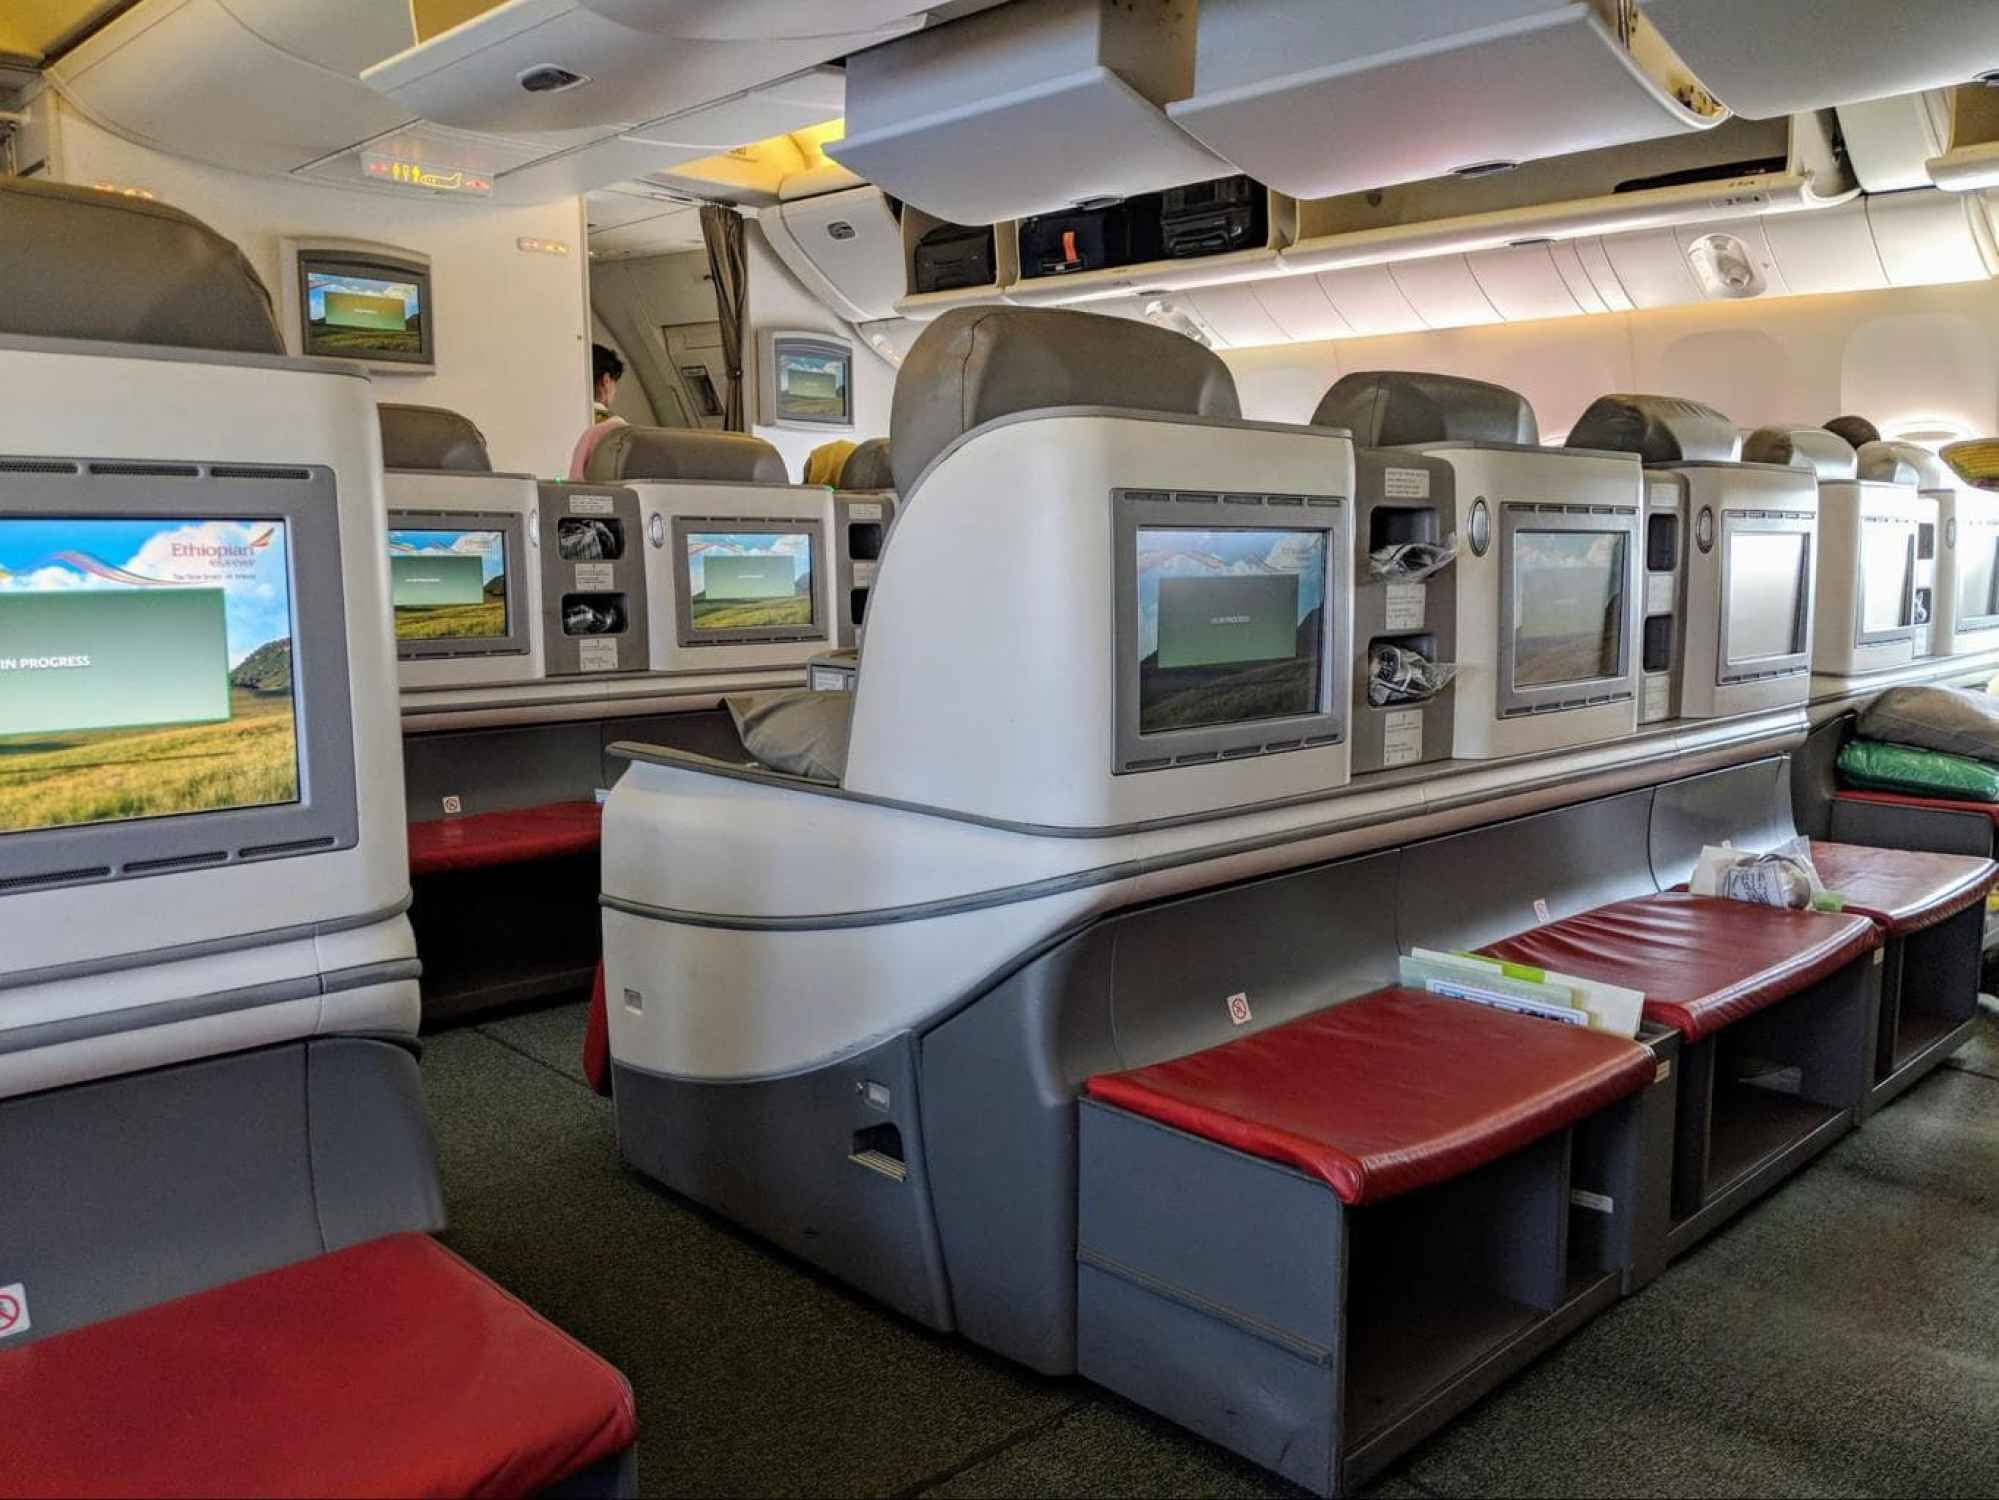 Footrest and TV on Ethiopian Airlines Business Class Boeing 777-300